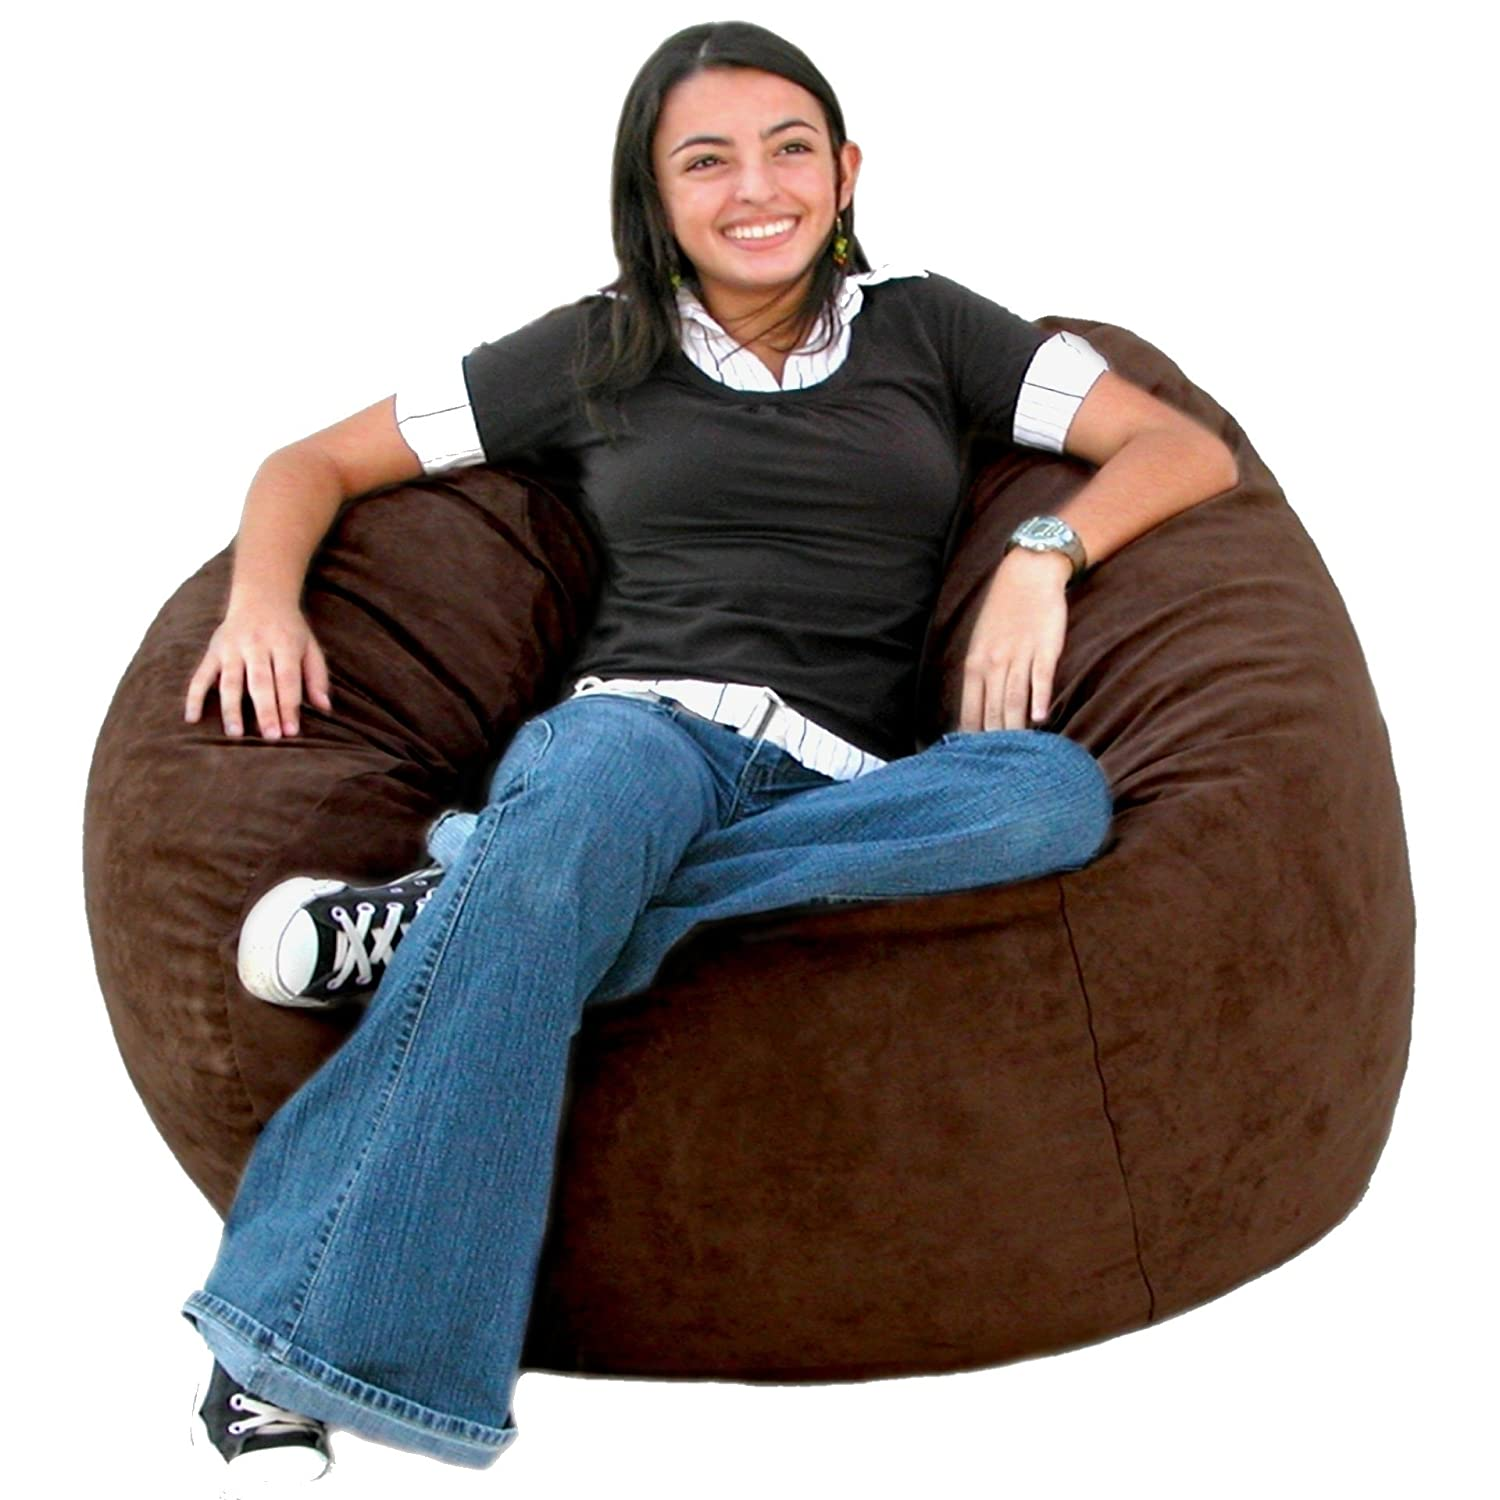 Amazon.com Cozy Sack 3-Feet Bean Bag Chair Medium Chocolate Kitchen u0026 Dining  sc 1 st  Amazon.com & Amazon.com: Cozy Sack 3-Feet Bean Bag Chair Medium Chocolate ...